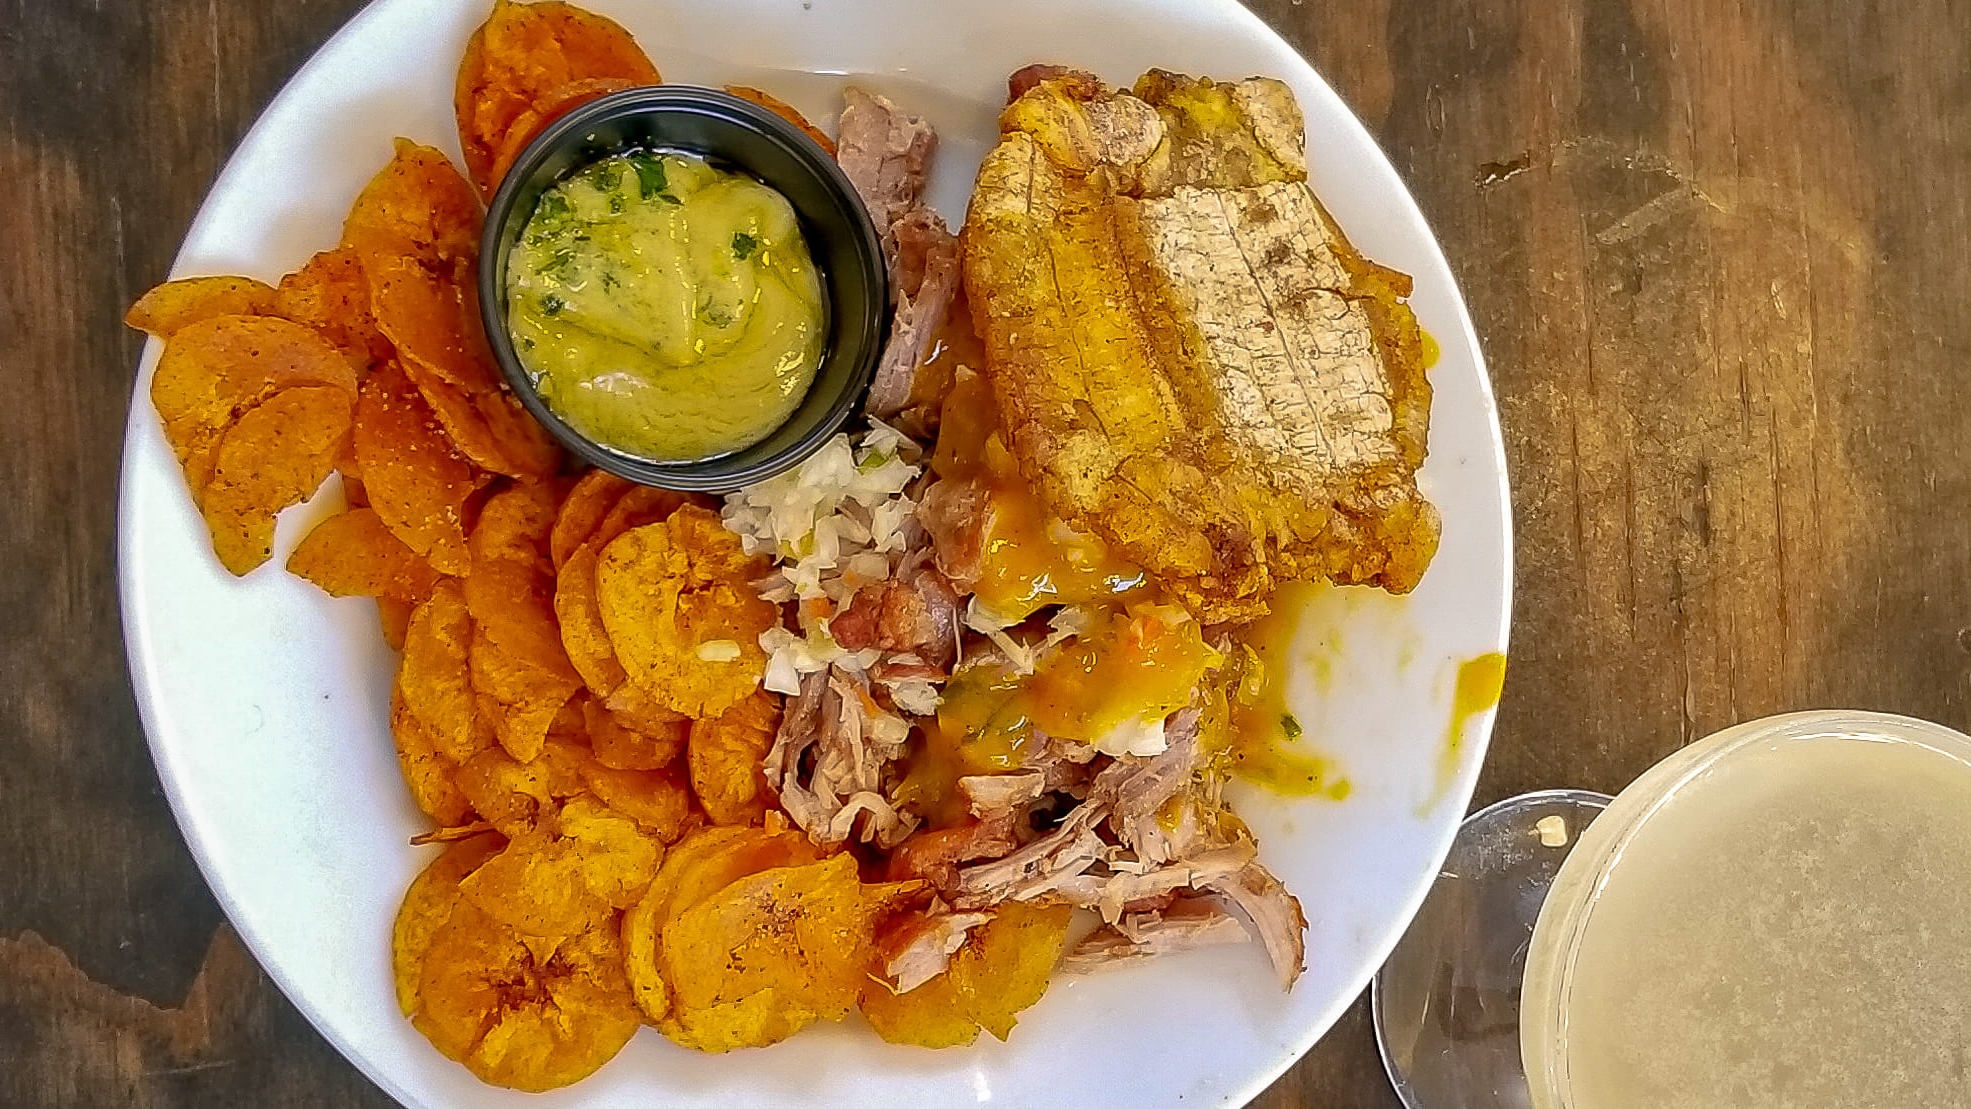 Plate with fried plantain chips with pork sandwich